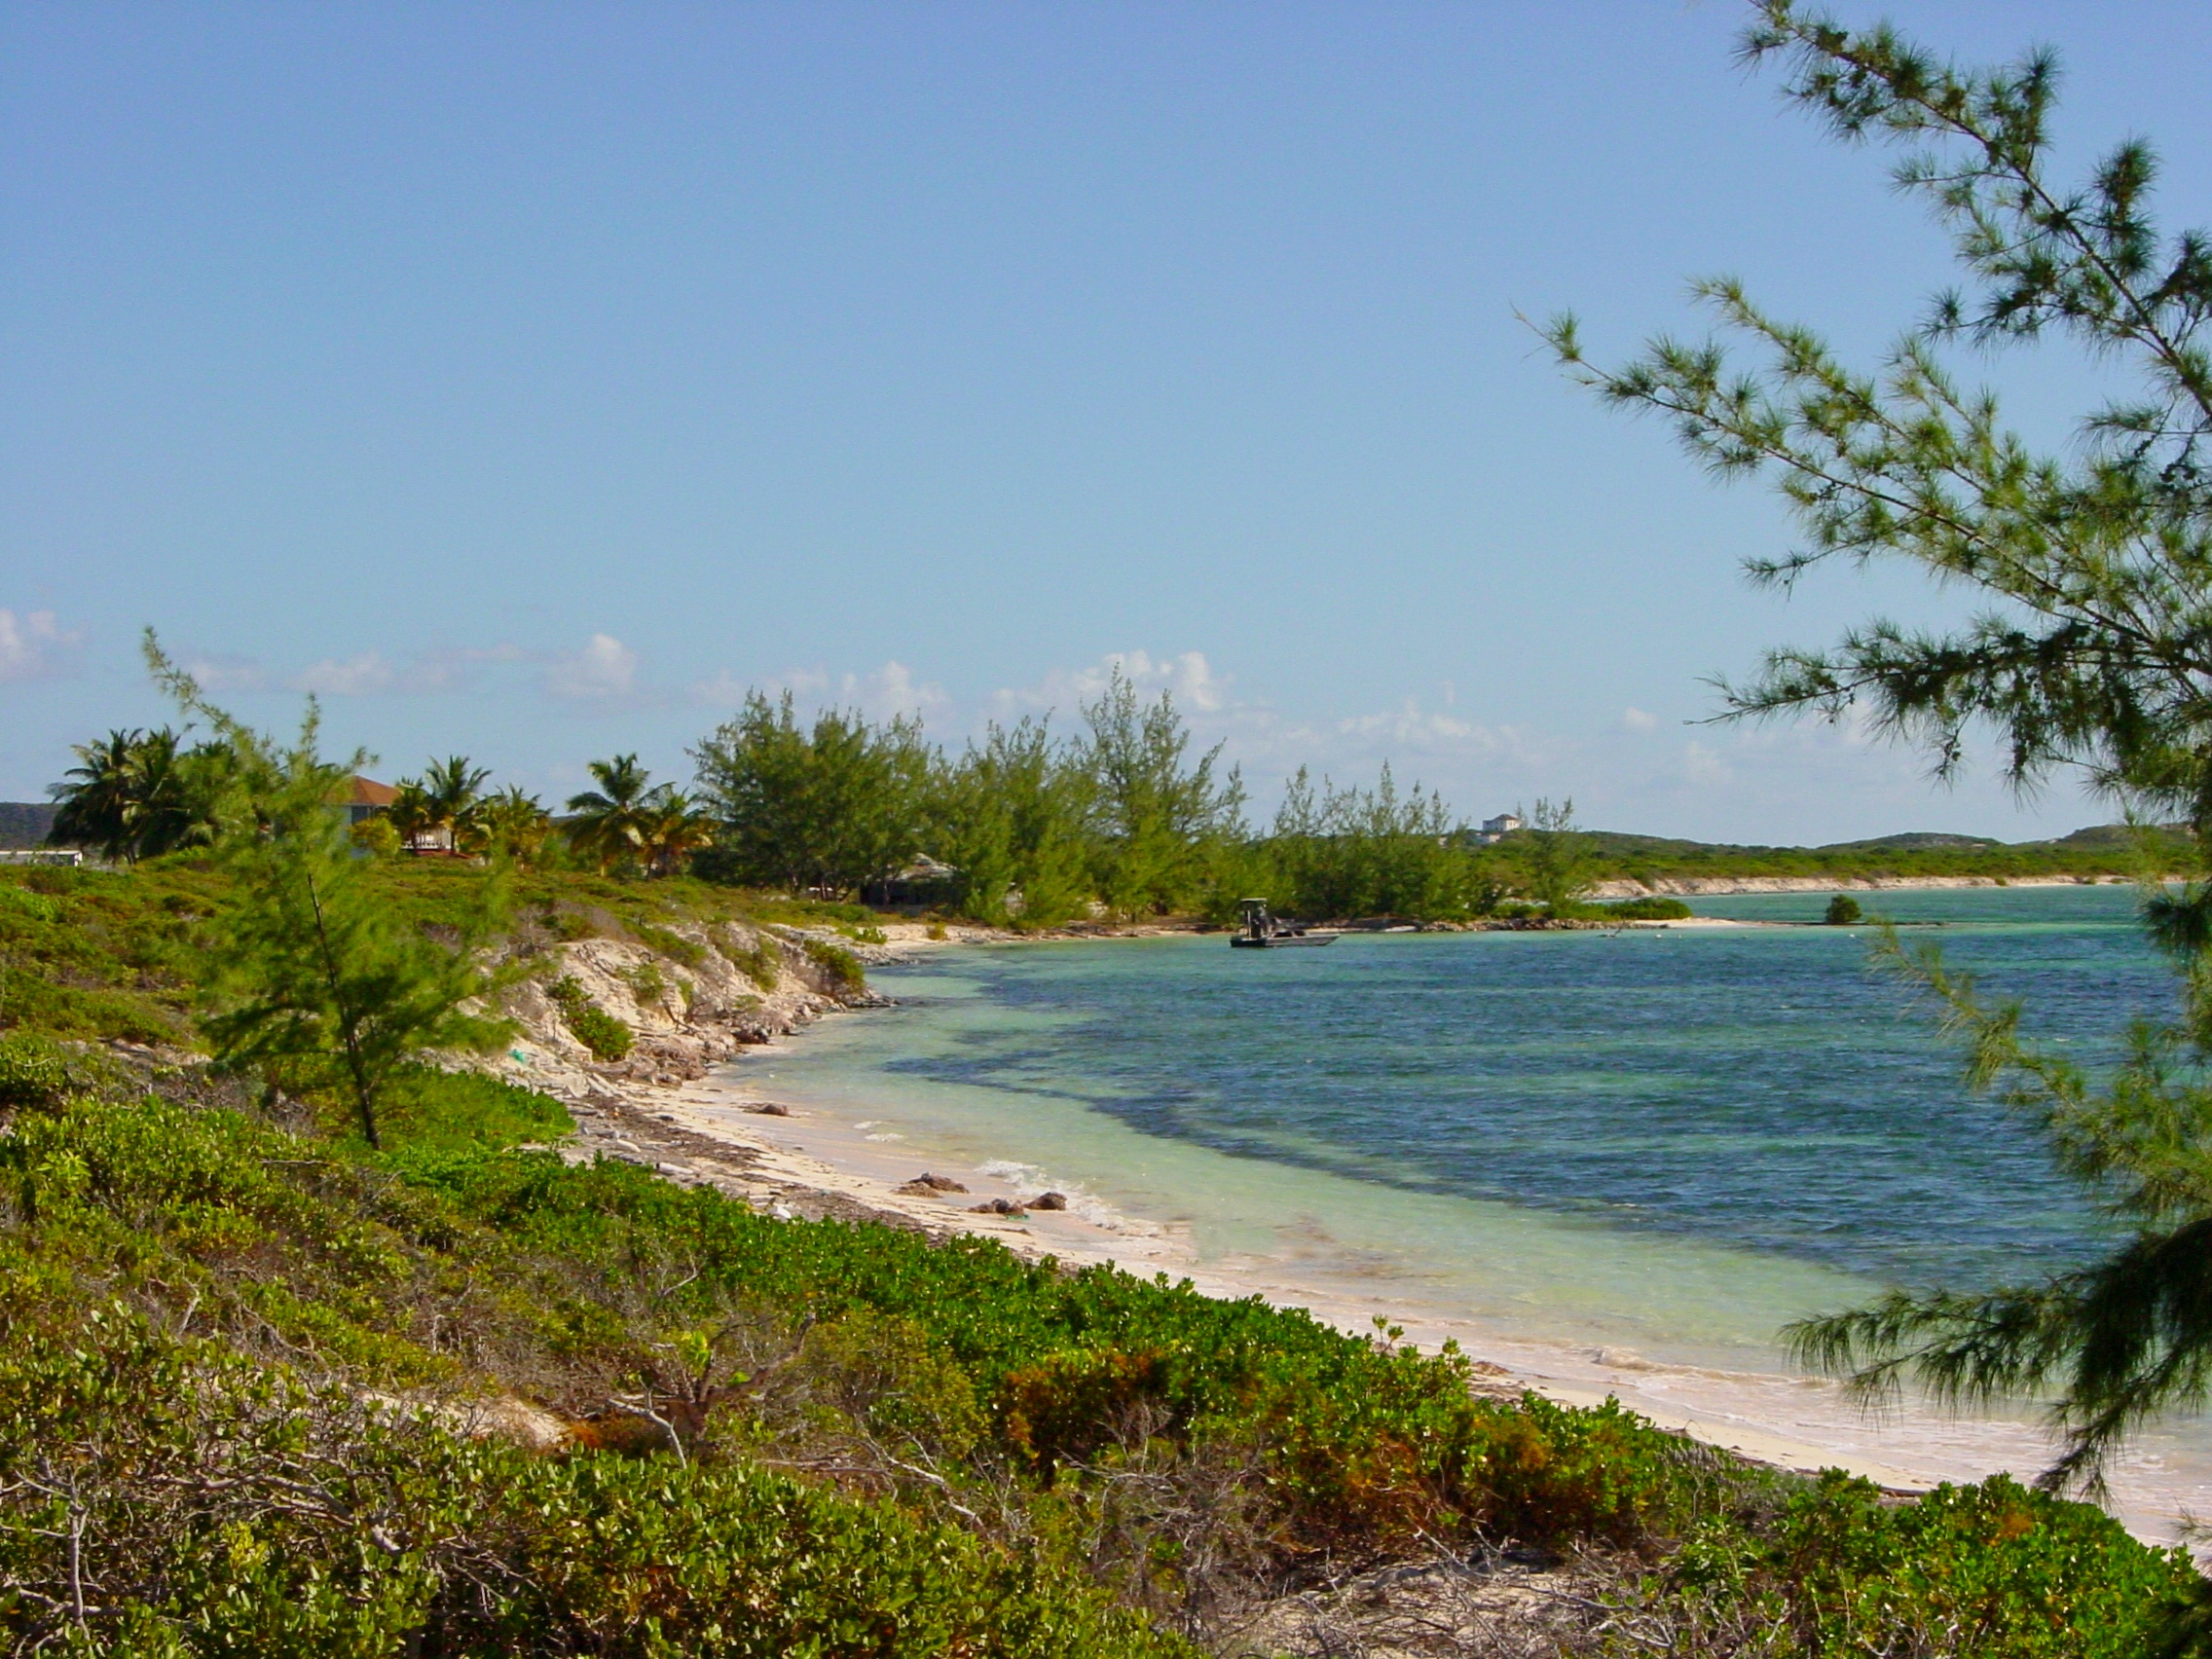 Property For Sale at Beachfront Development Land in South Caicos